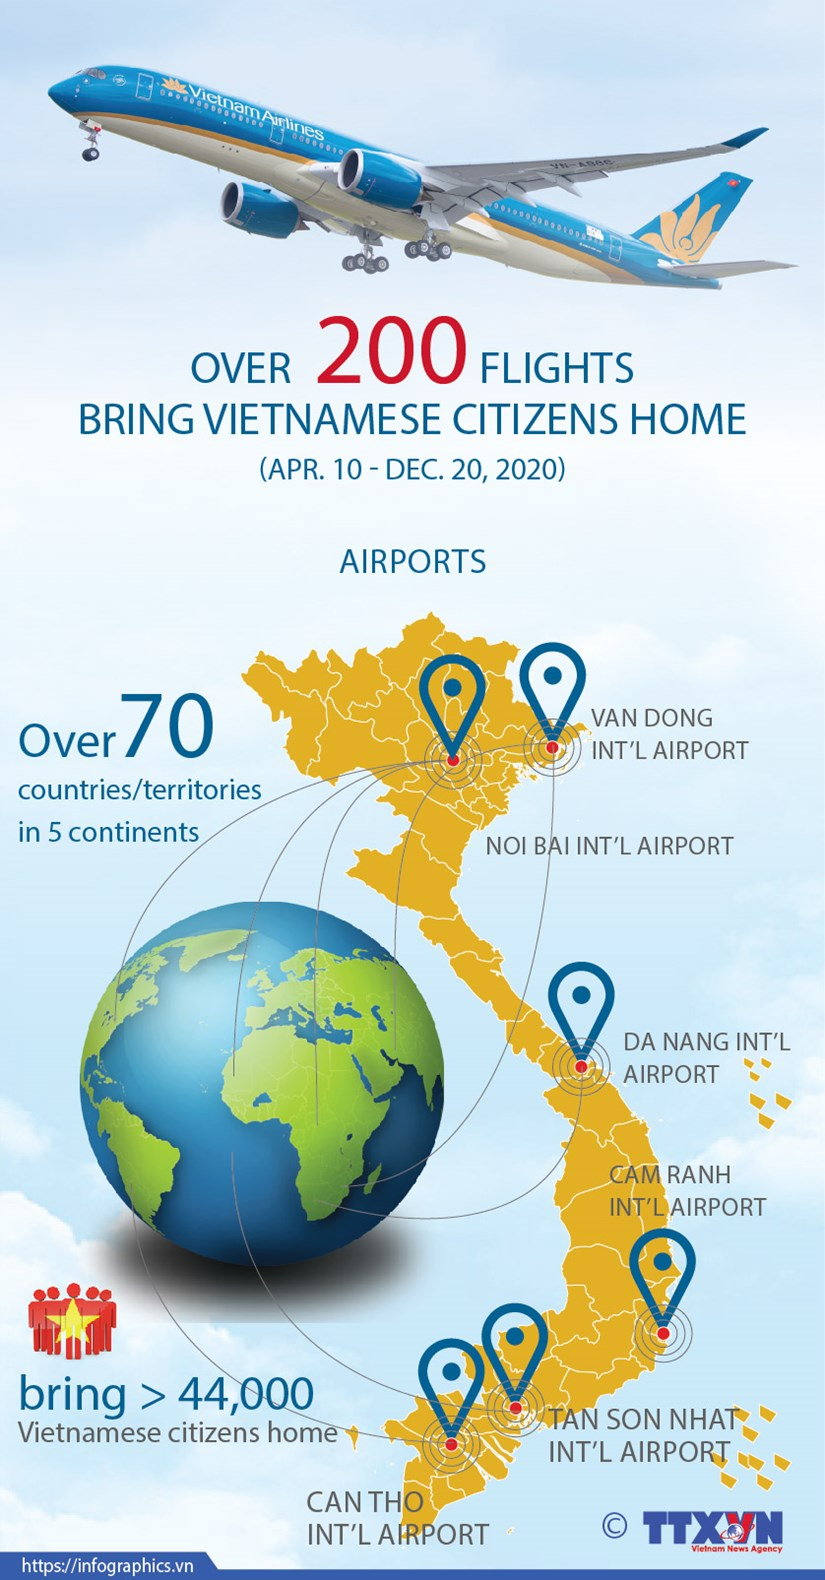 Over 200 flights bring Vietnamese citizens home hinh anh 1